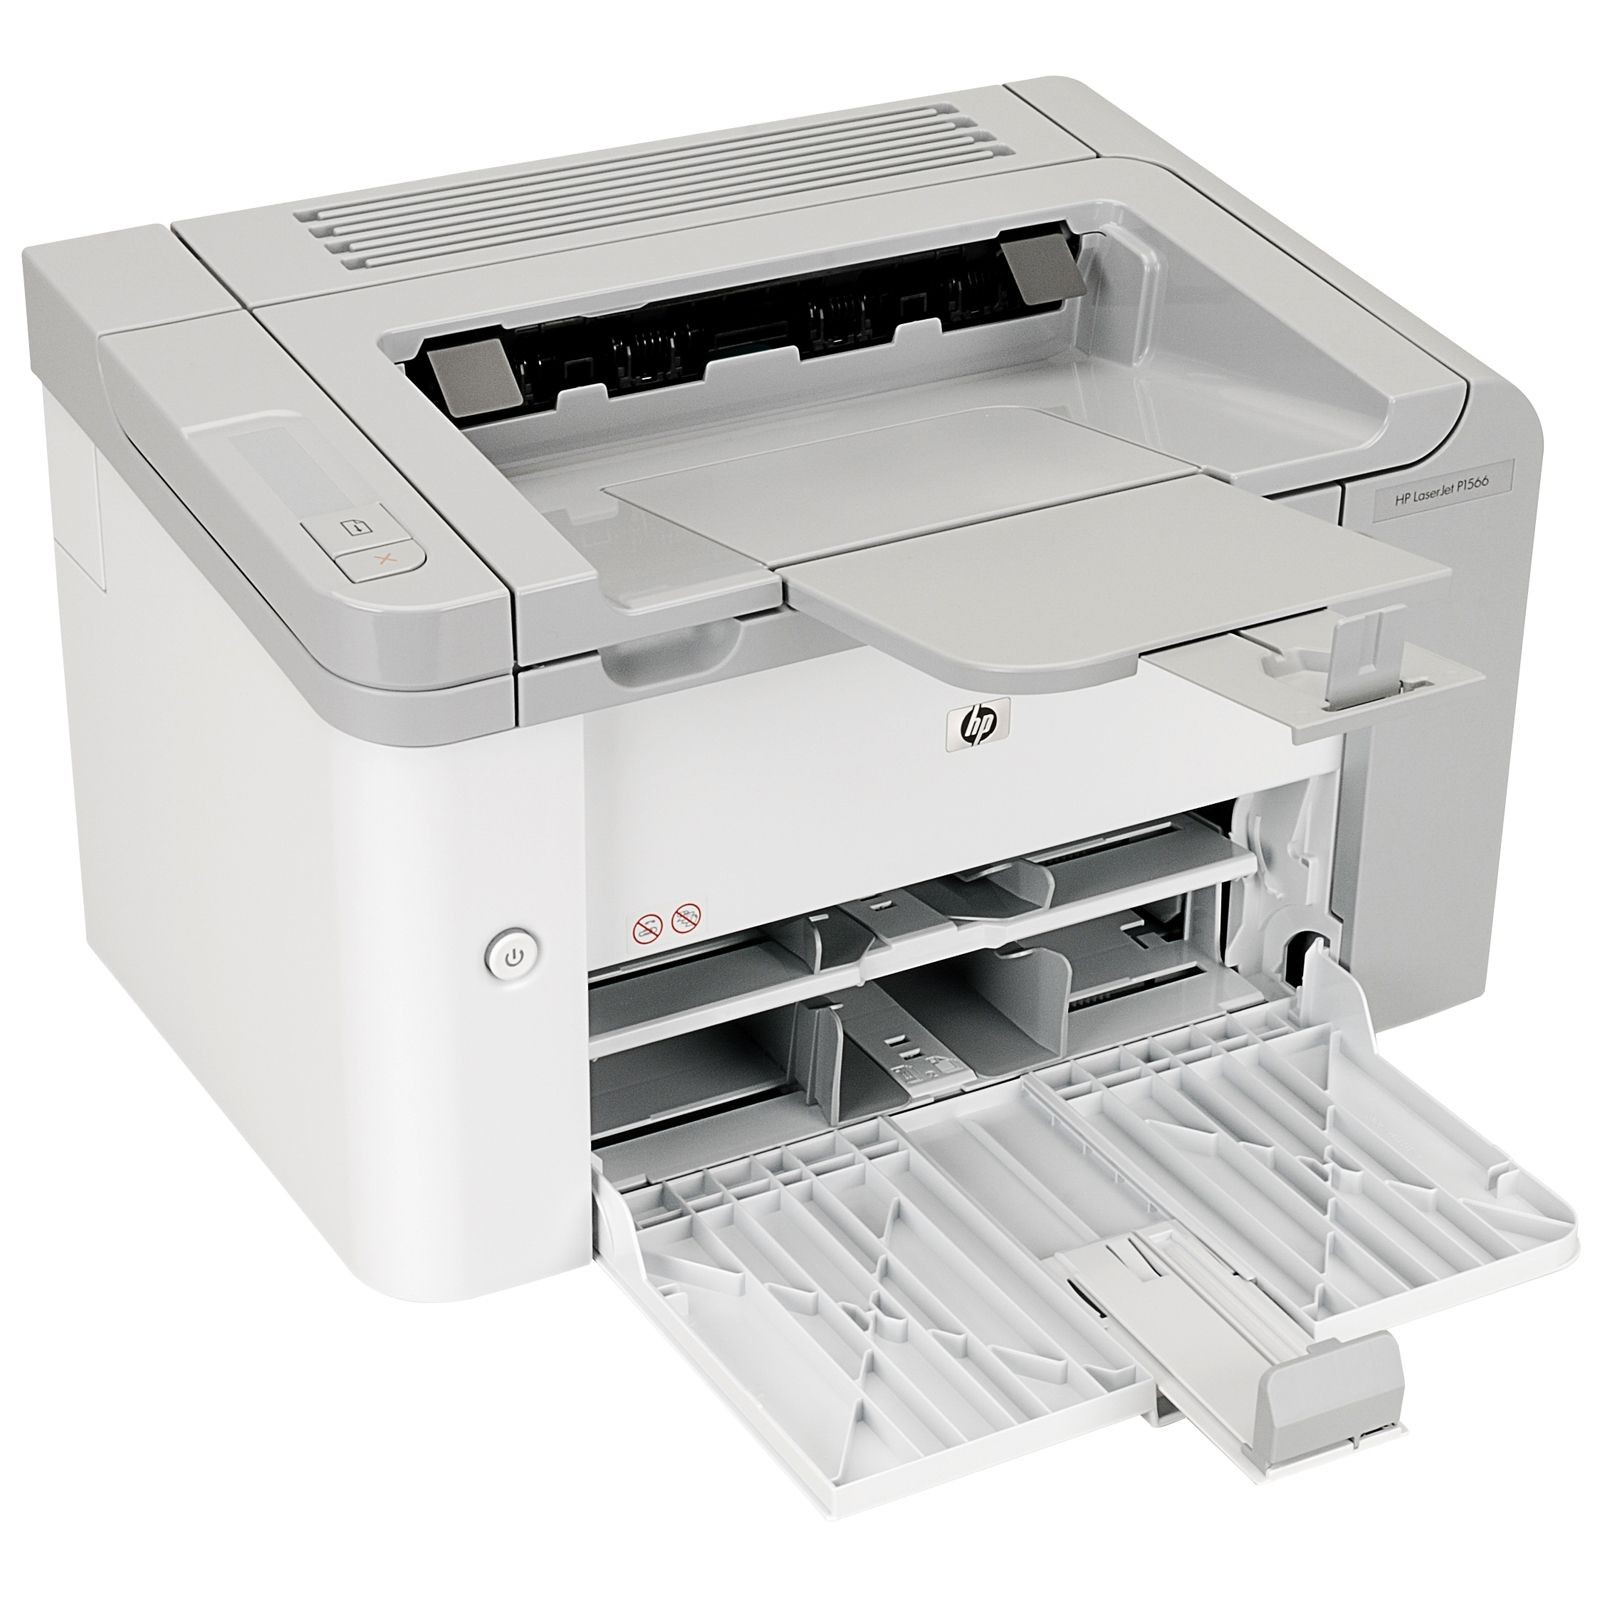 Принтер HP LaserJet Pro P1566 Printer